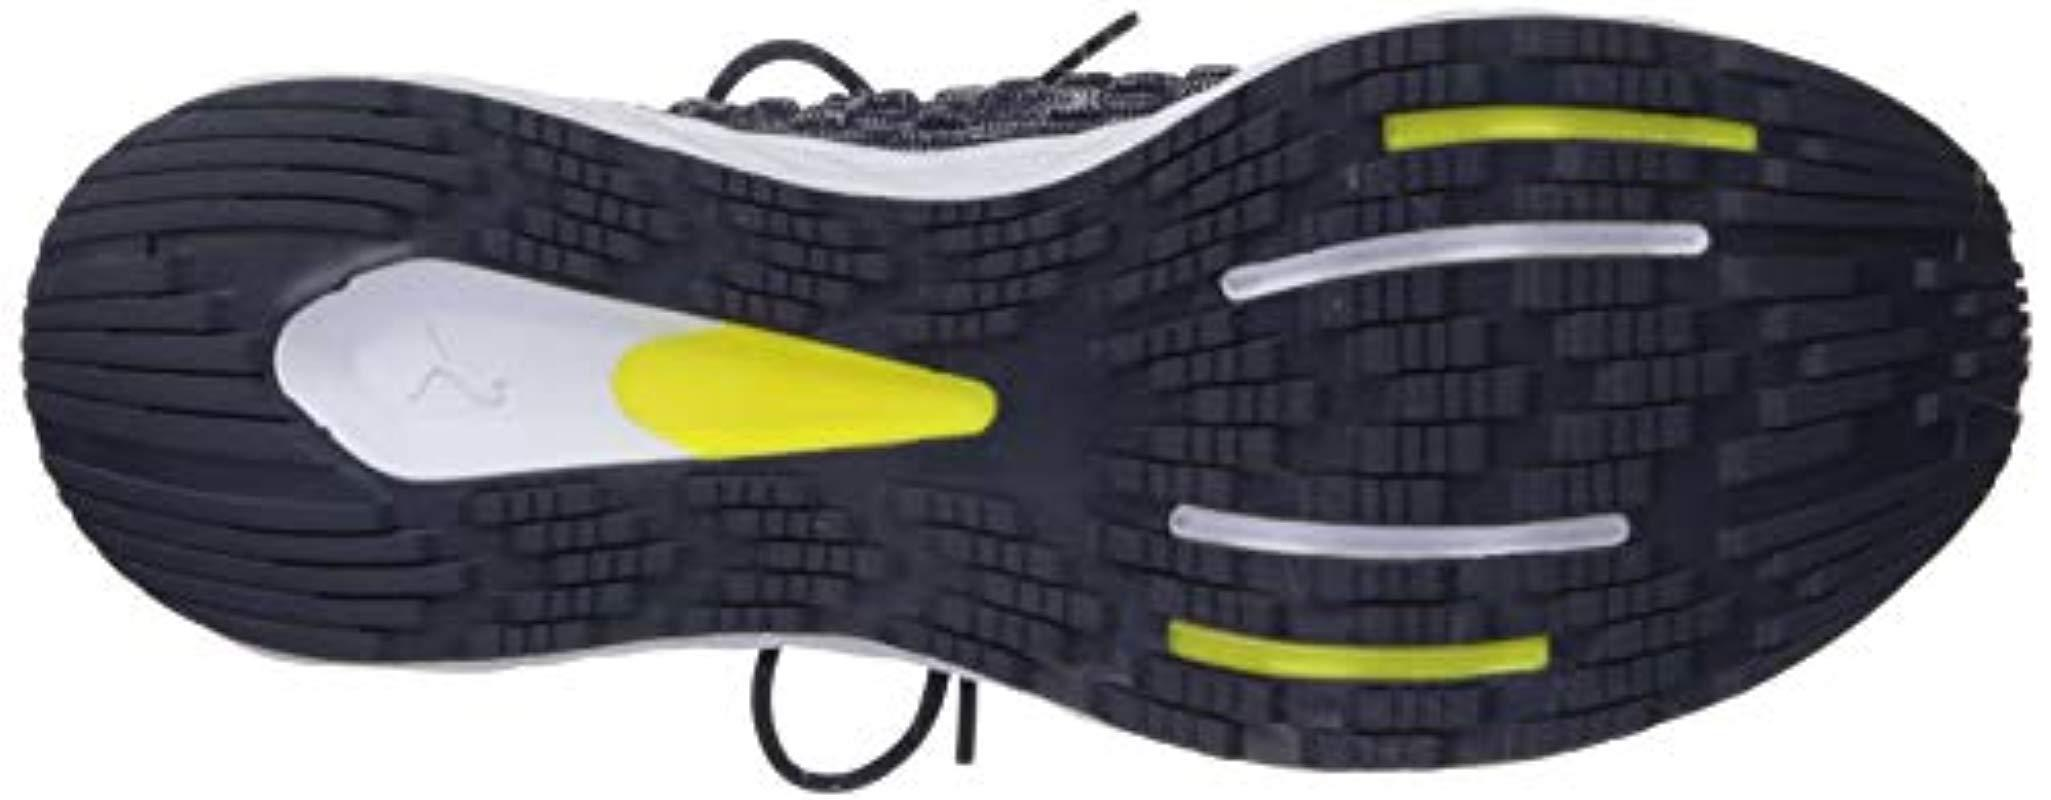 e67afed1b305 PUMA - Blue Speed 600 Fusefit (peacoat  White blazing Yellow) Men s Shoes.  View fullscreen